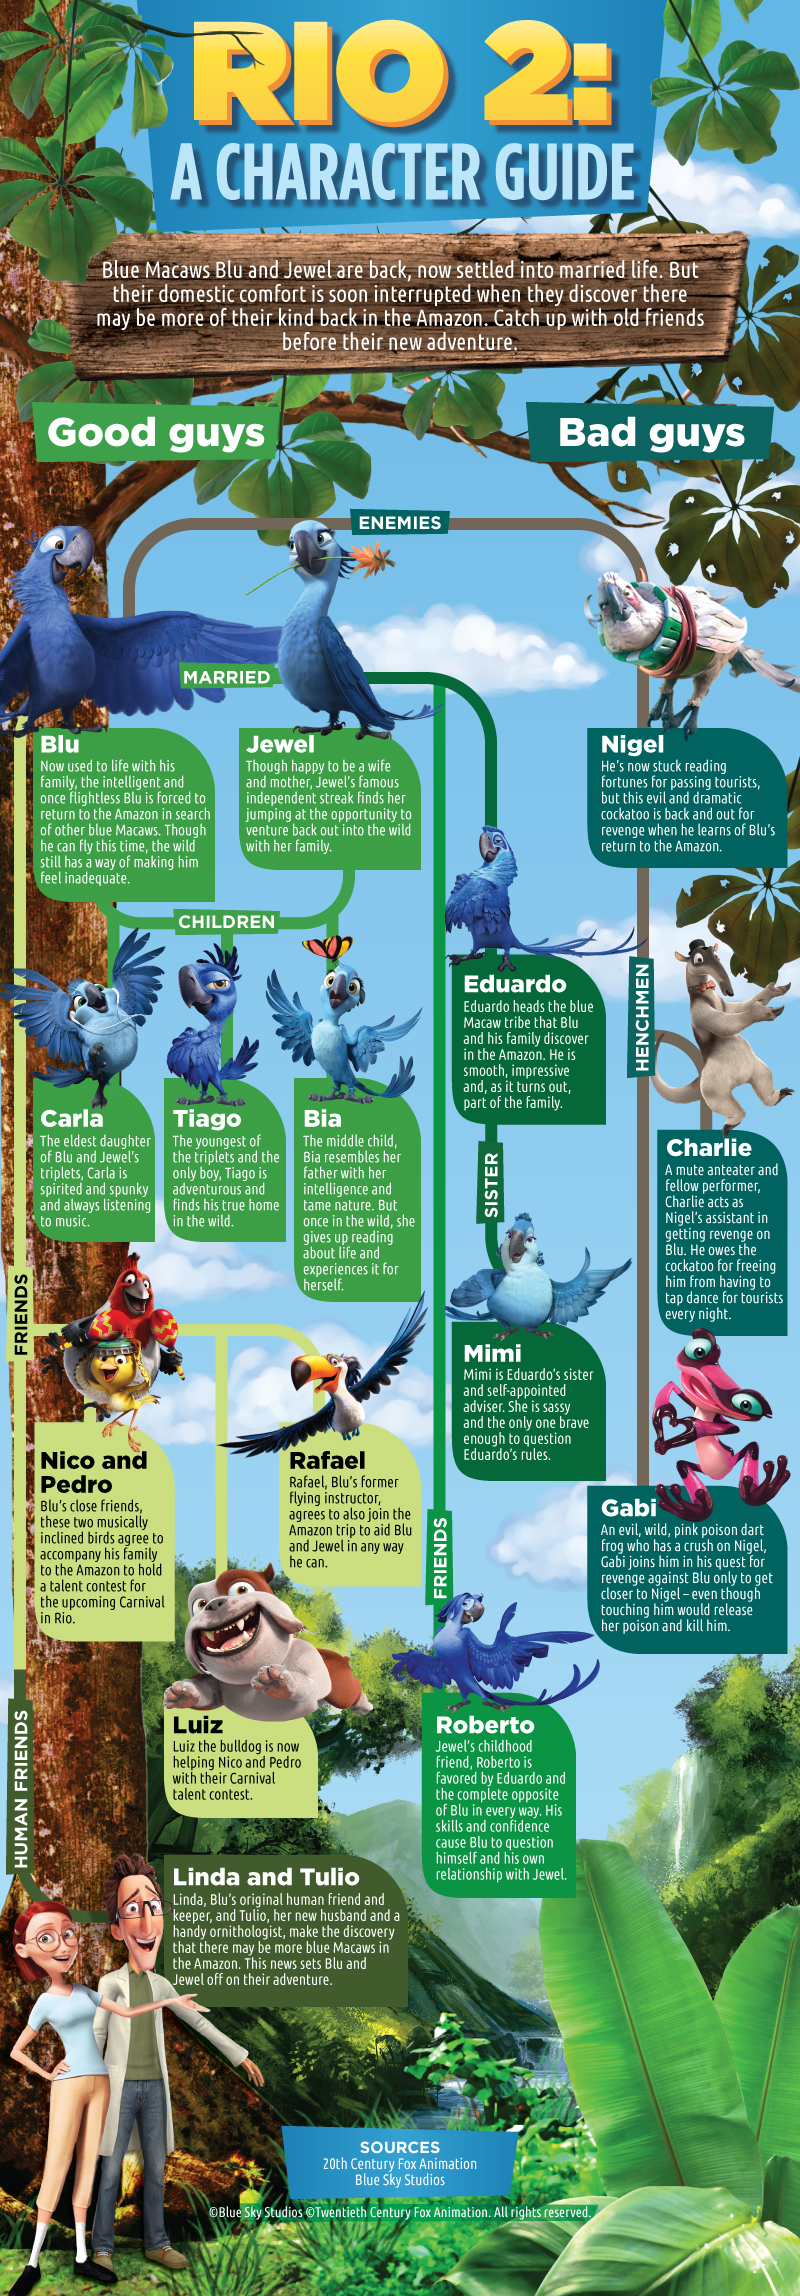 Rio 2 character guide